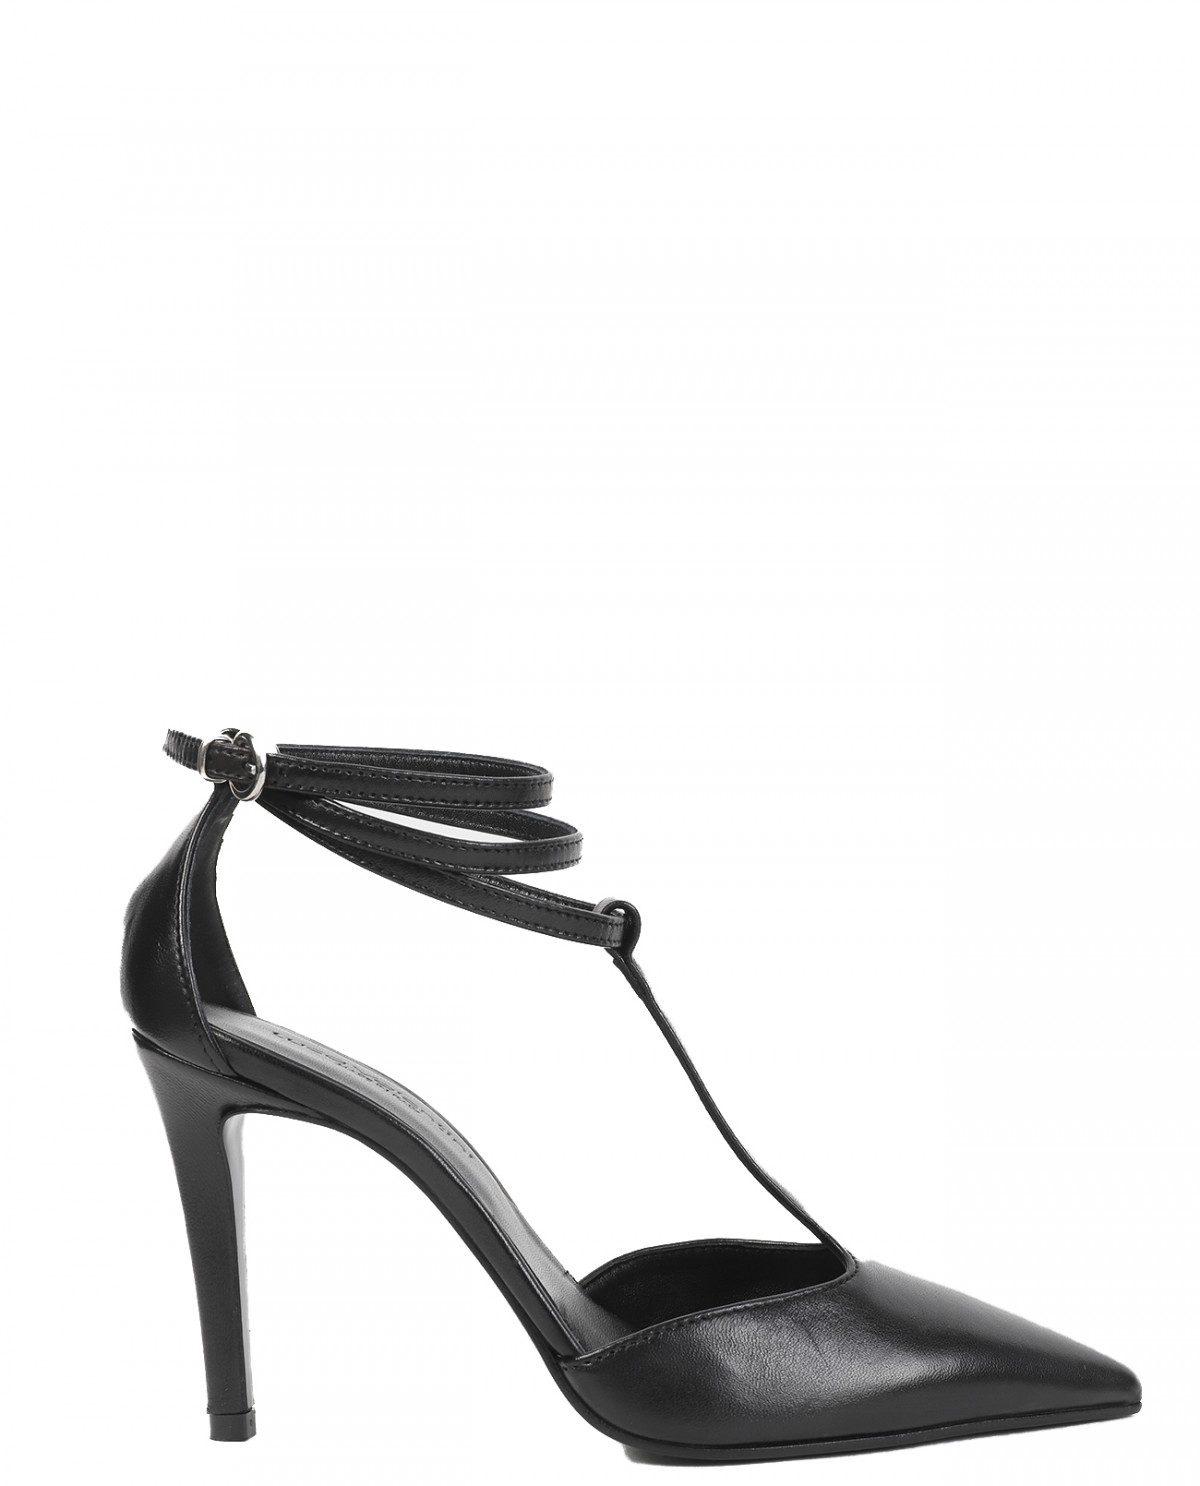 Luca Valentini black pumps